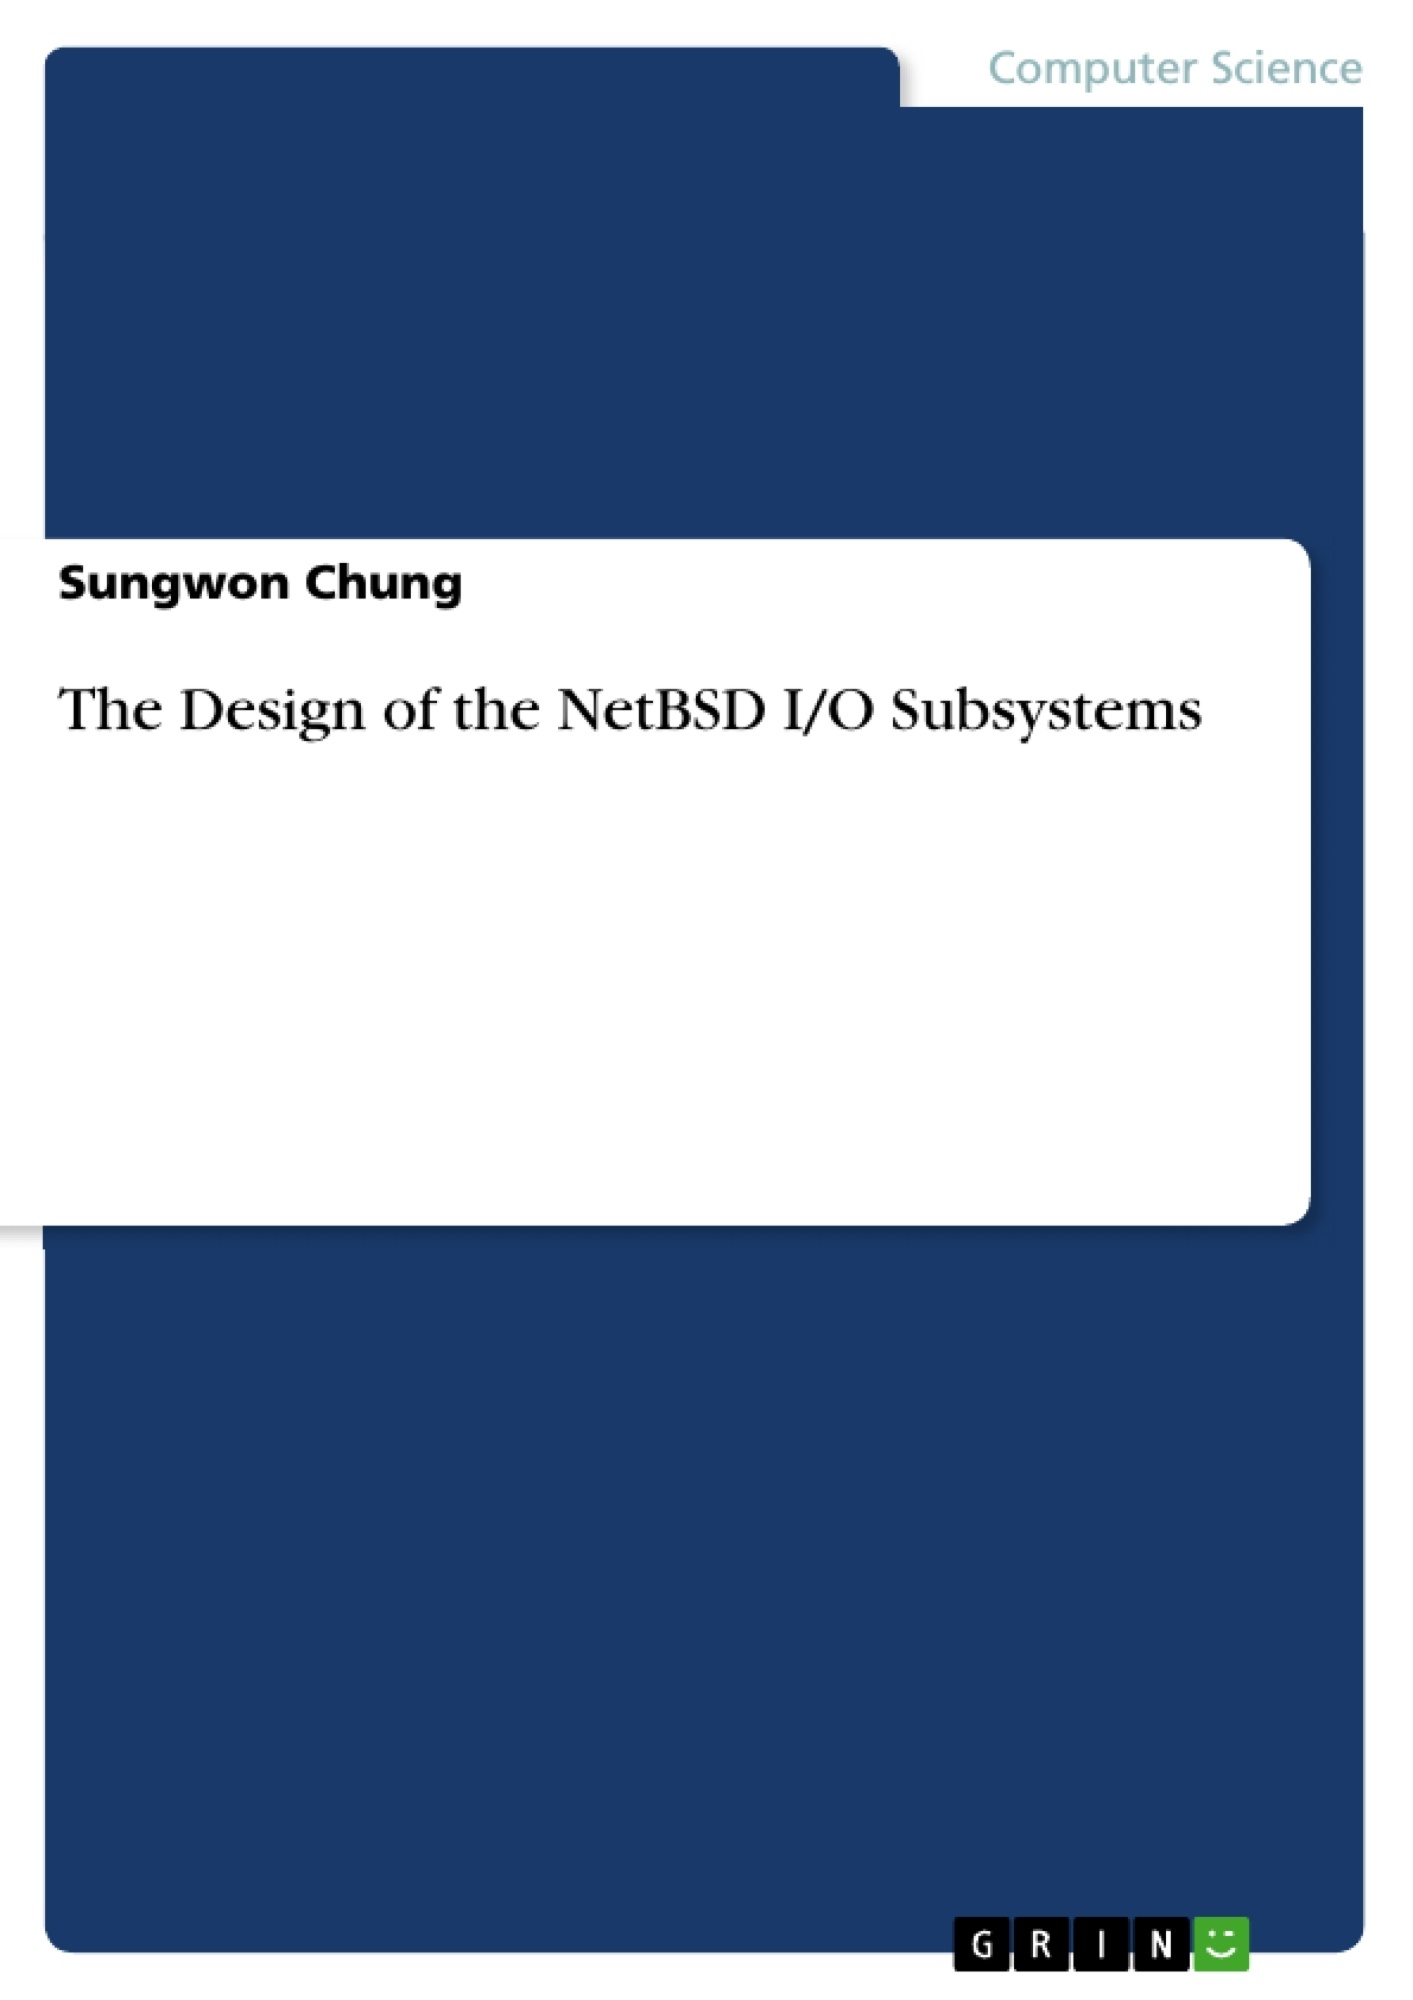 GRIN - The Design of the NetBSD I/O Subsystems